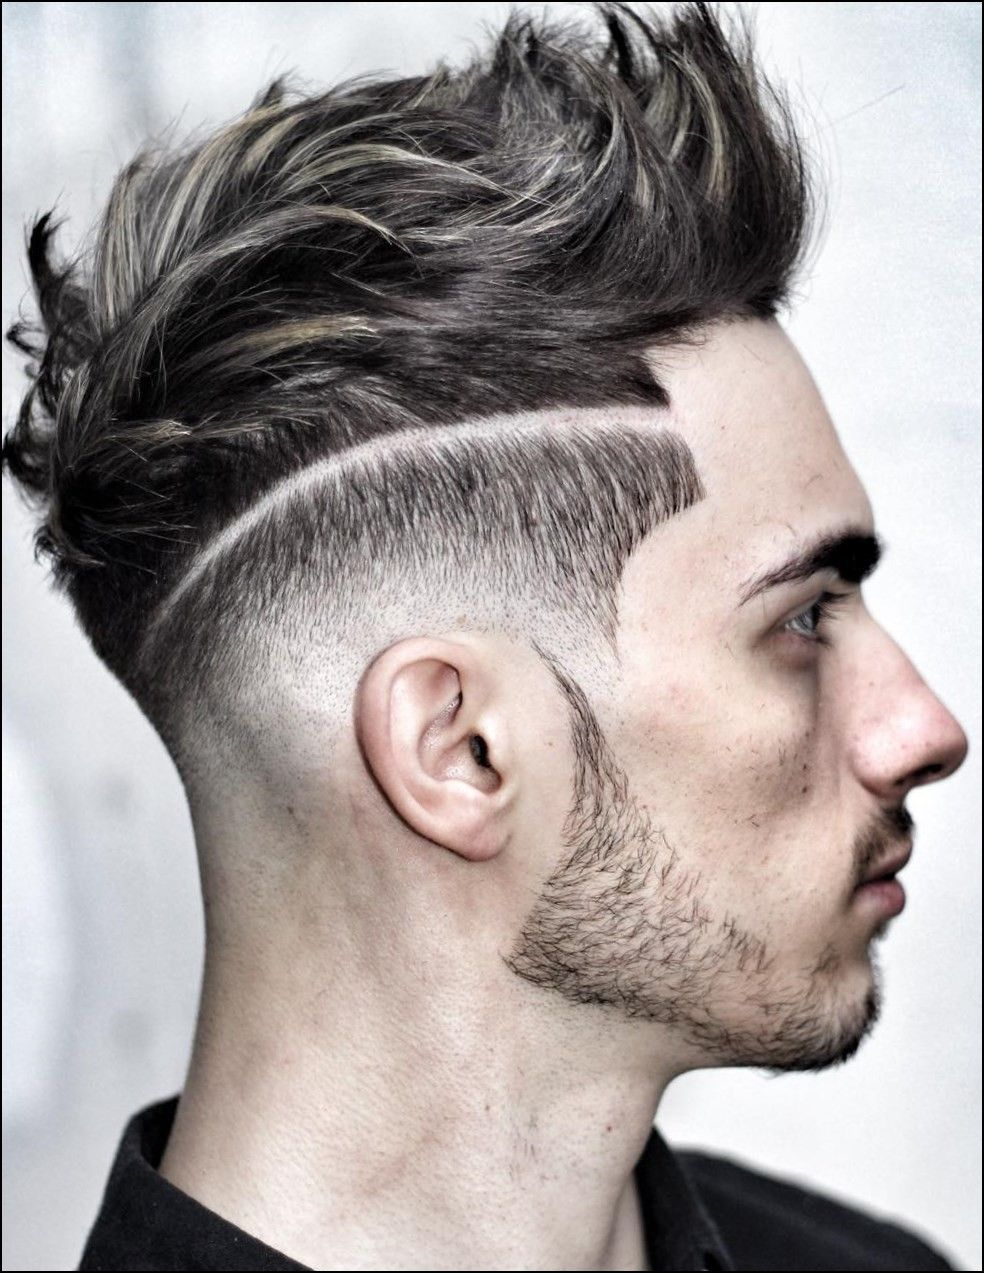 Best boy hair color the best haircuts for guys  hair  pinterest  haircuts and boy